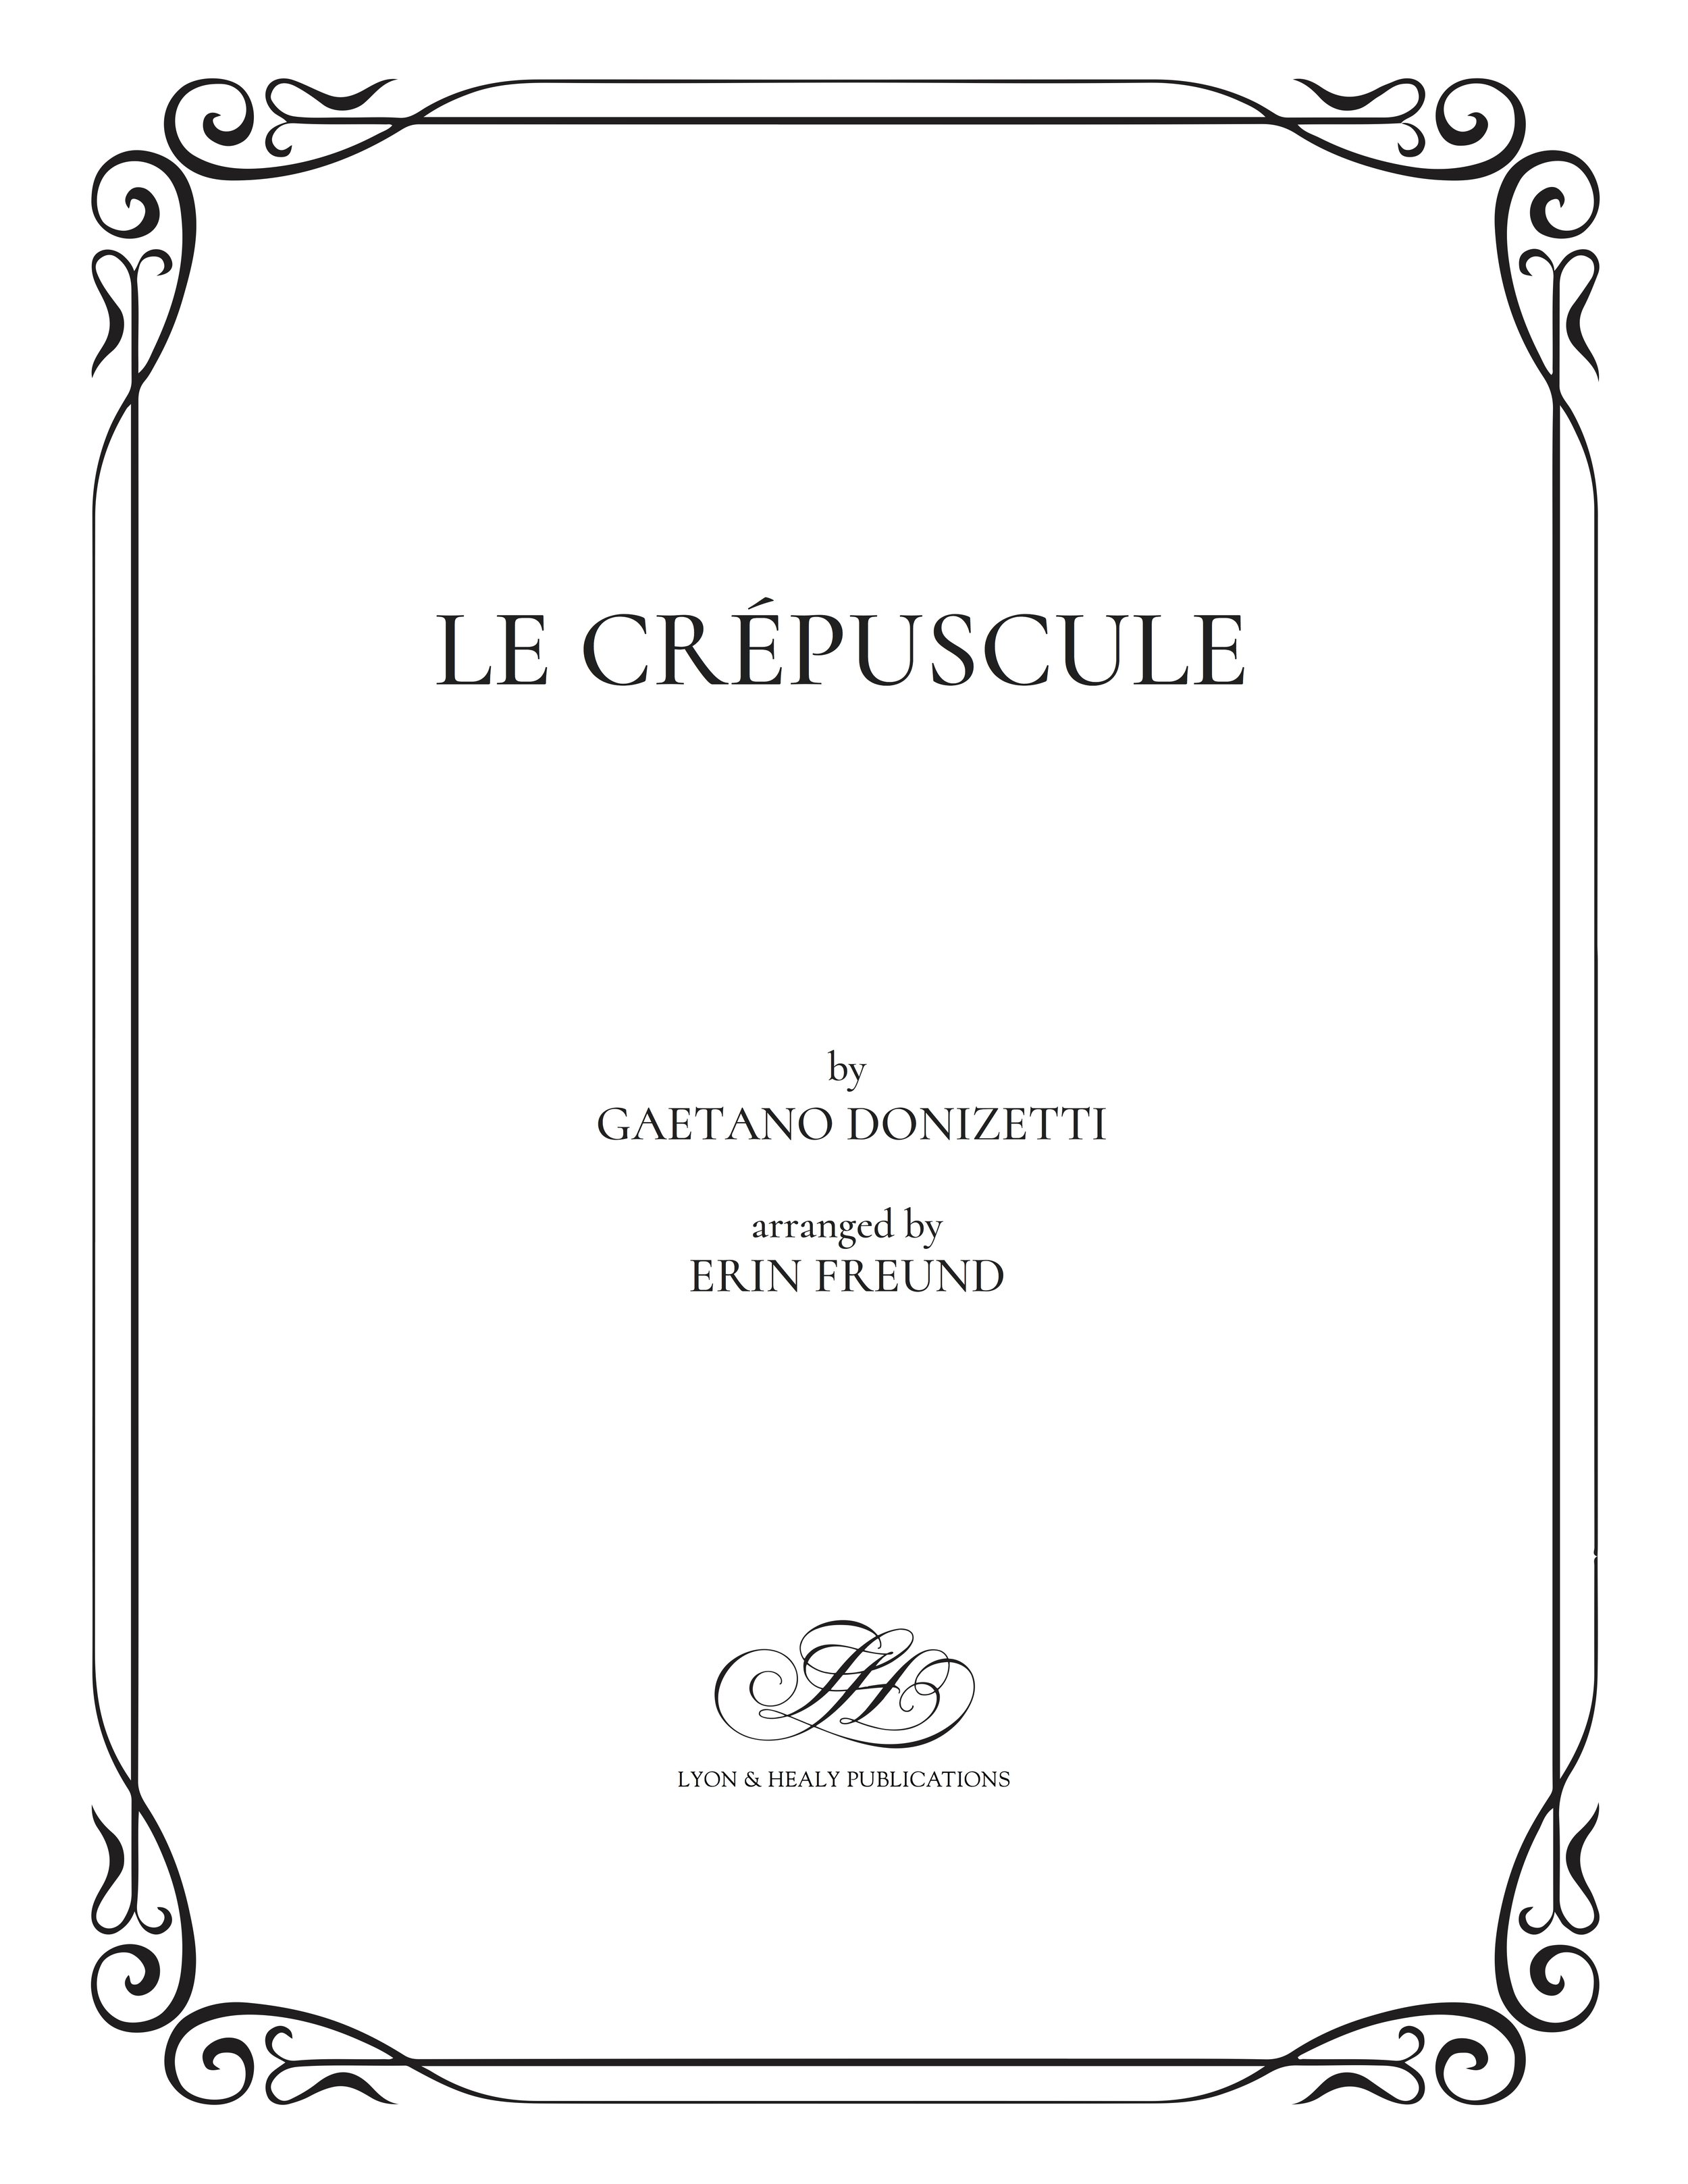 Le Crepuscle - Donizetti-Freund cover.jpg